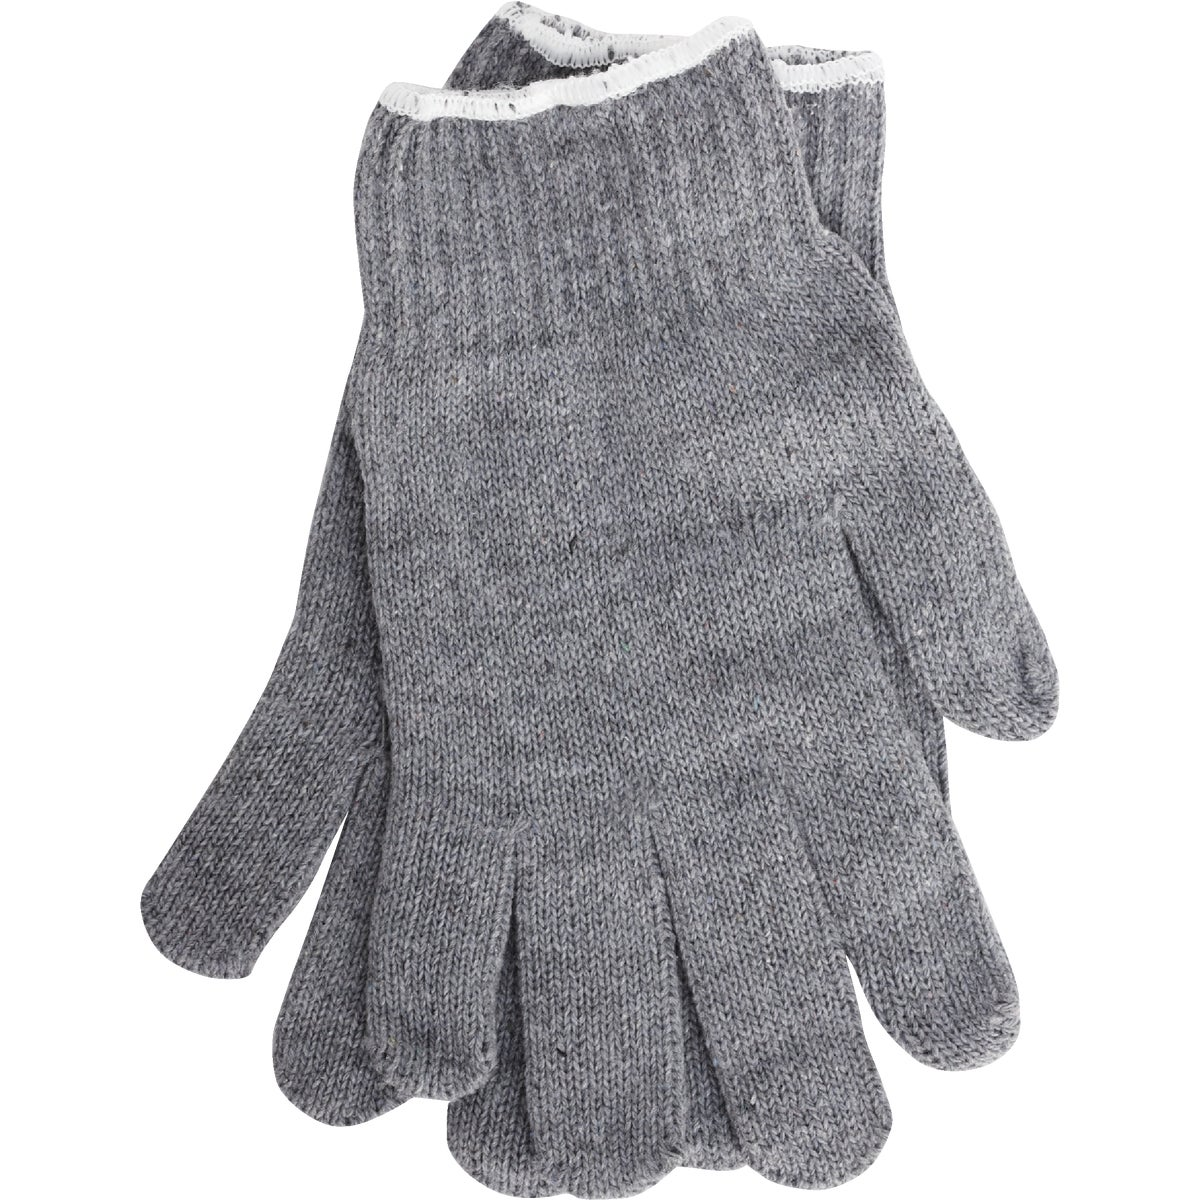 ACRY-POLY KNIT GLOVE - 767995 by Do it Best